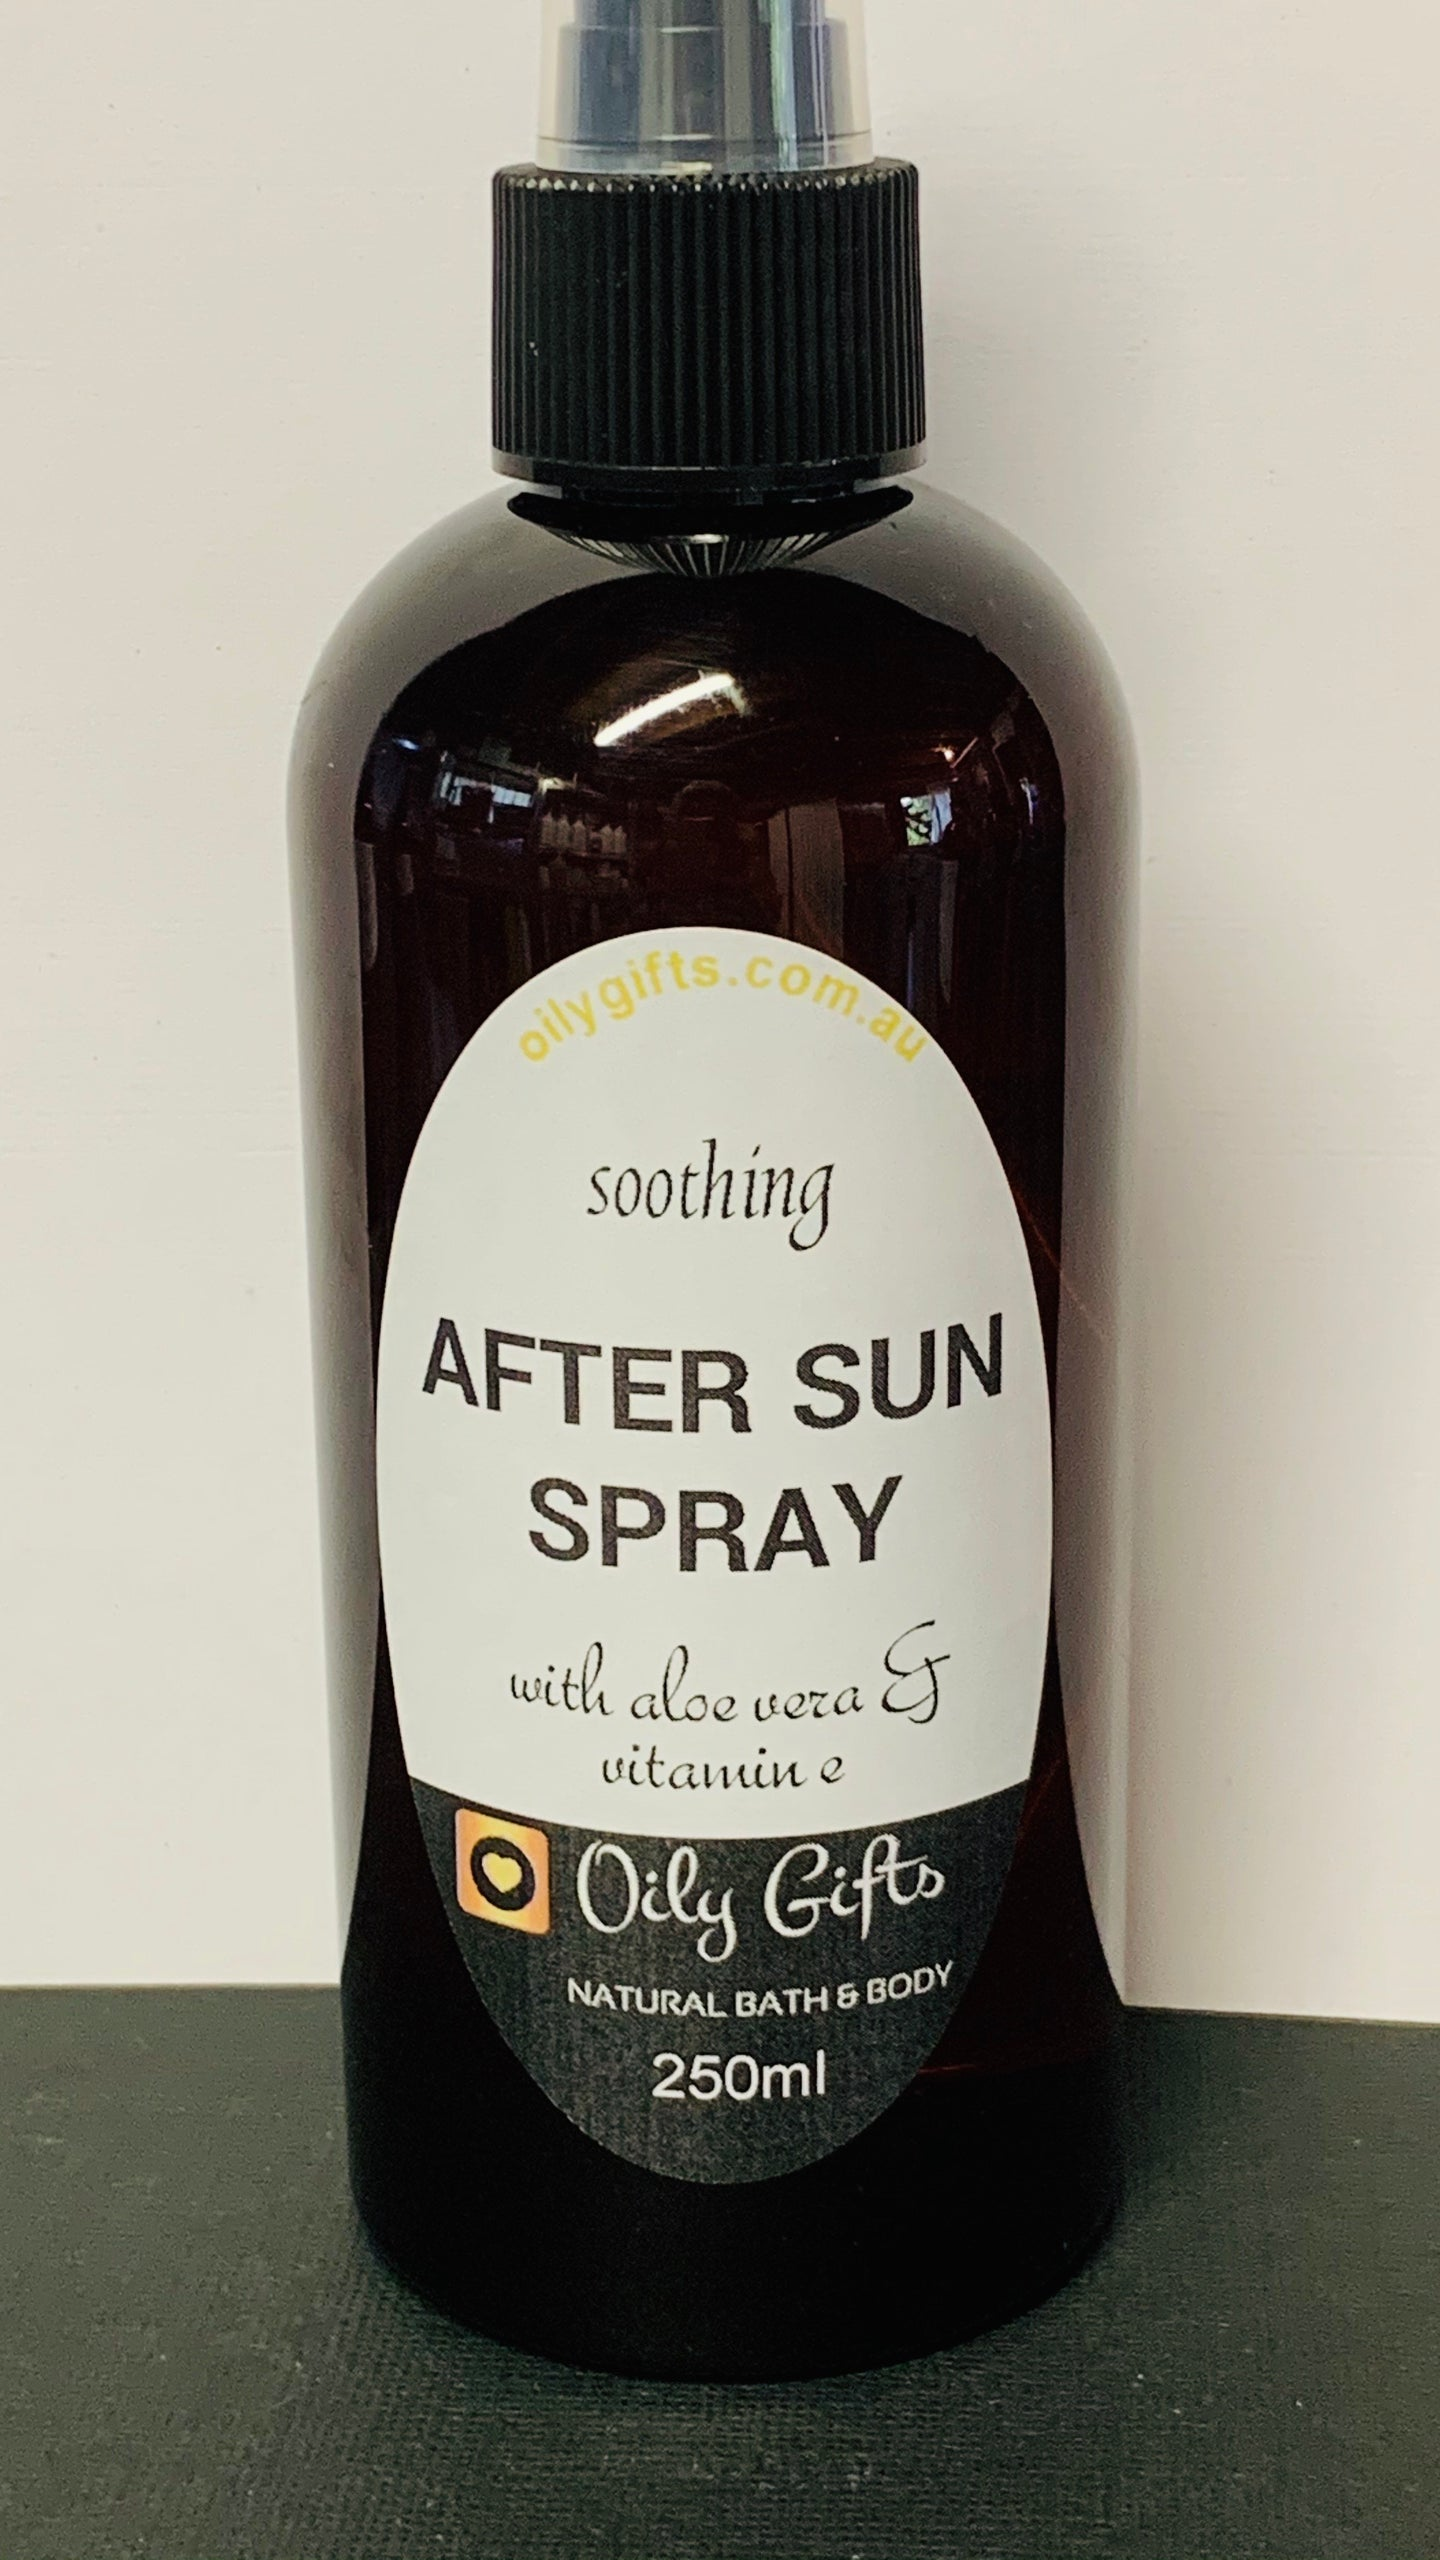 AFTER SUN Aloe Vera Cooling Spray